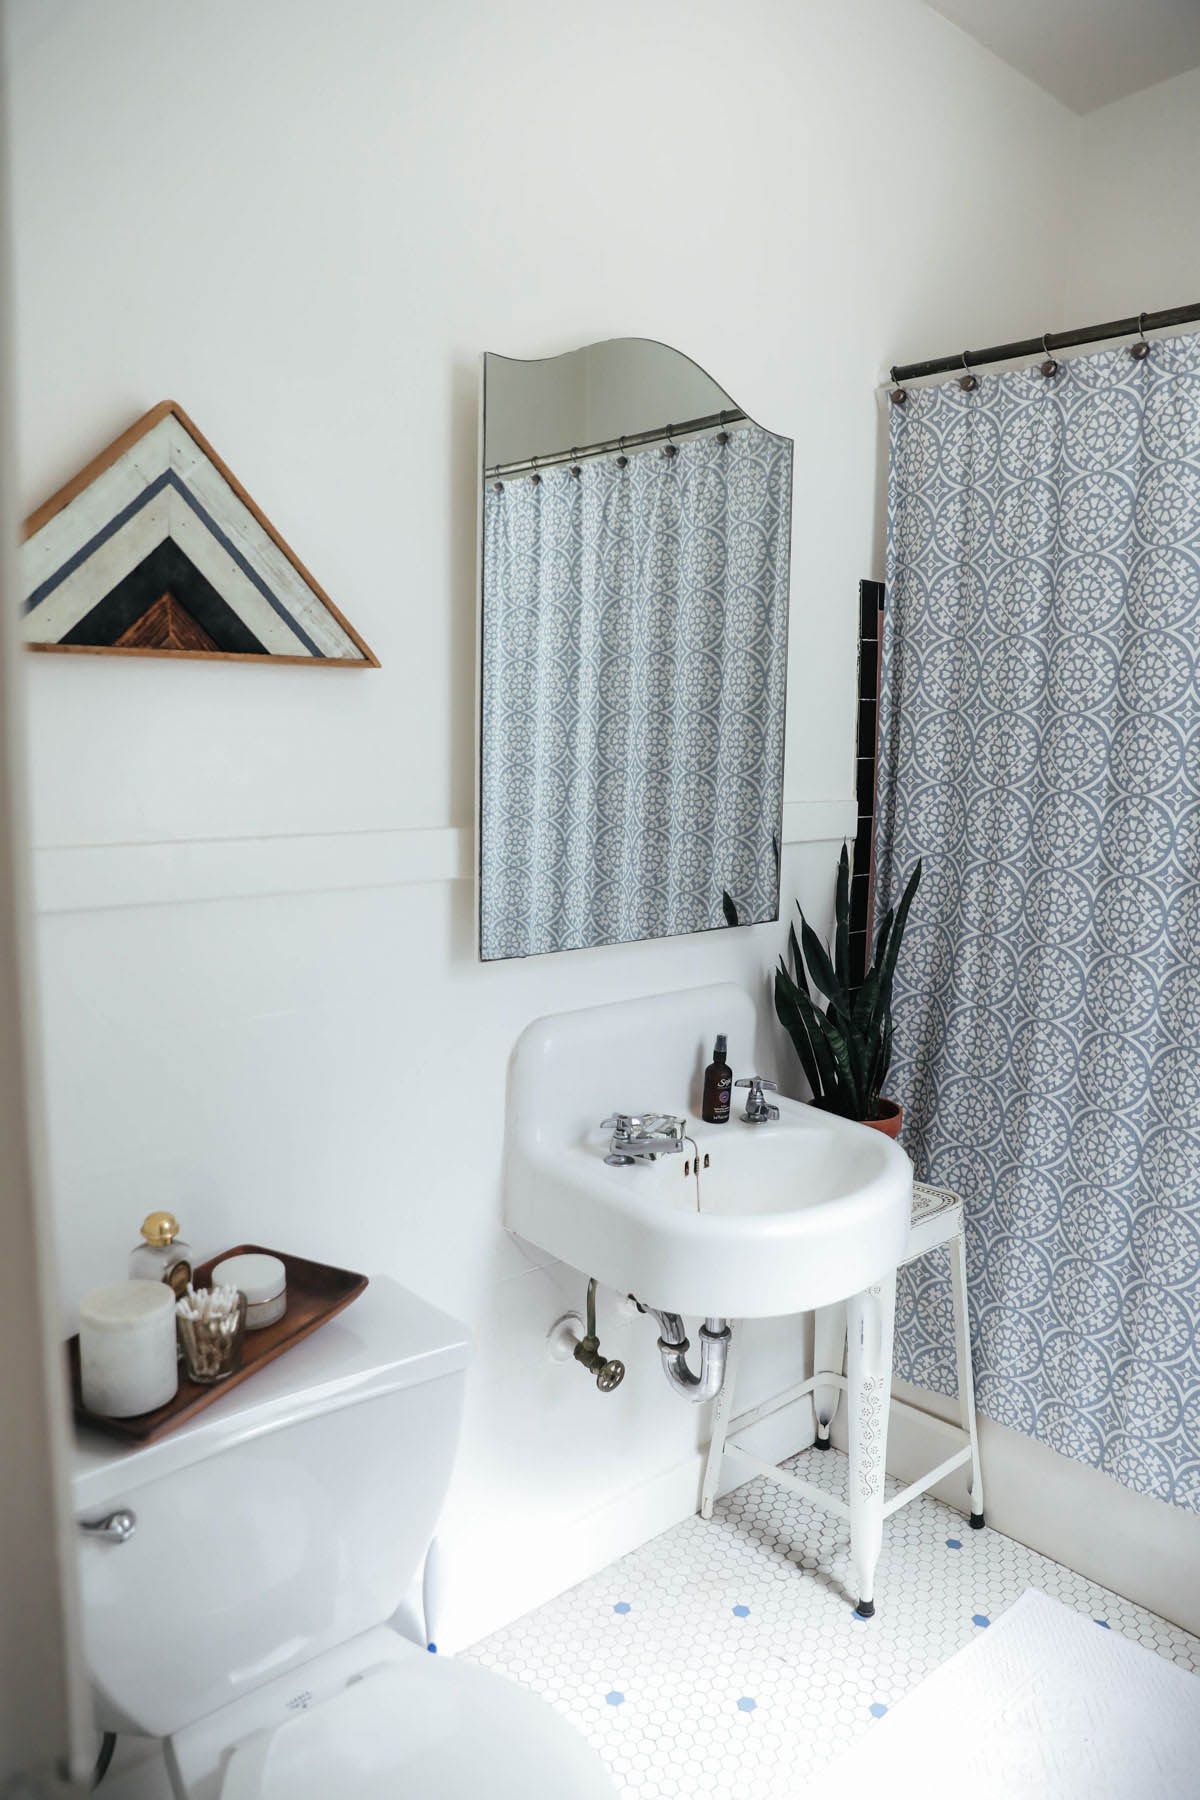 How To Keep A Clean Bathroom When Living With Roommates - How to keep bathroom clean